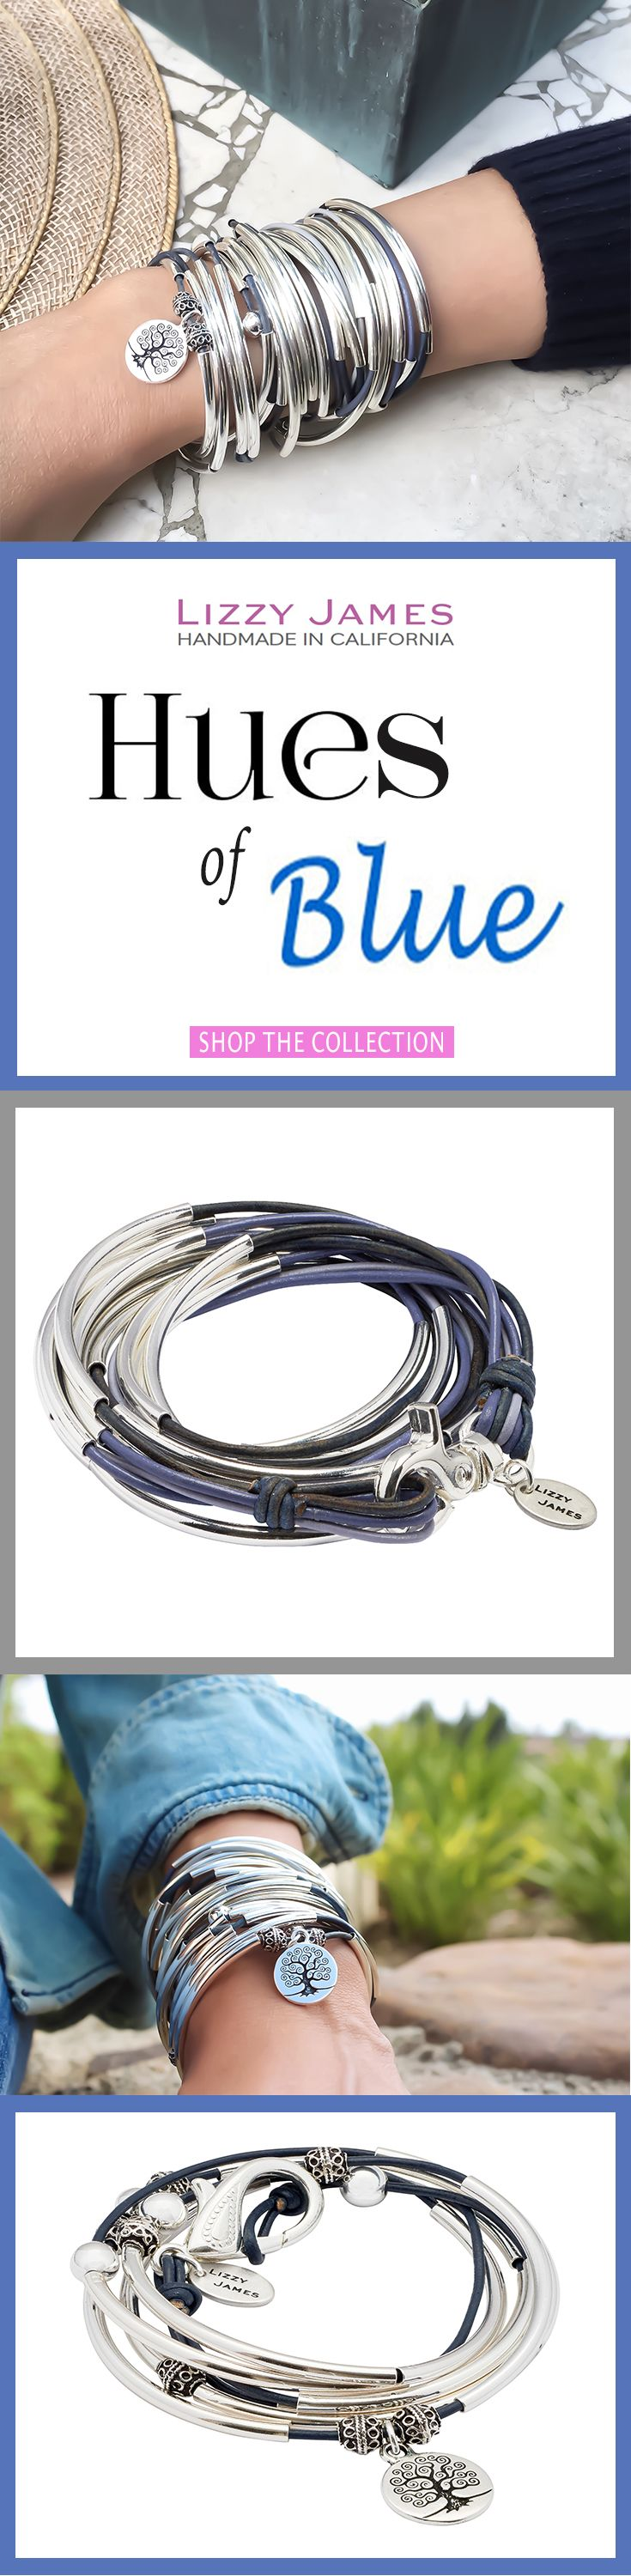 Lizzy James Jewelry adds hues of blue to your style! Featuring leather & cotton cord wrap bracelets that can also be worn as necklaces, our designs fit all wrist sizes from petite to plus size. Available in 50+ leather colors! Proud to be made in the USA!   #LizzyJames